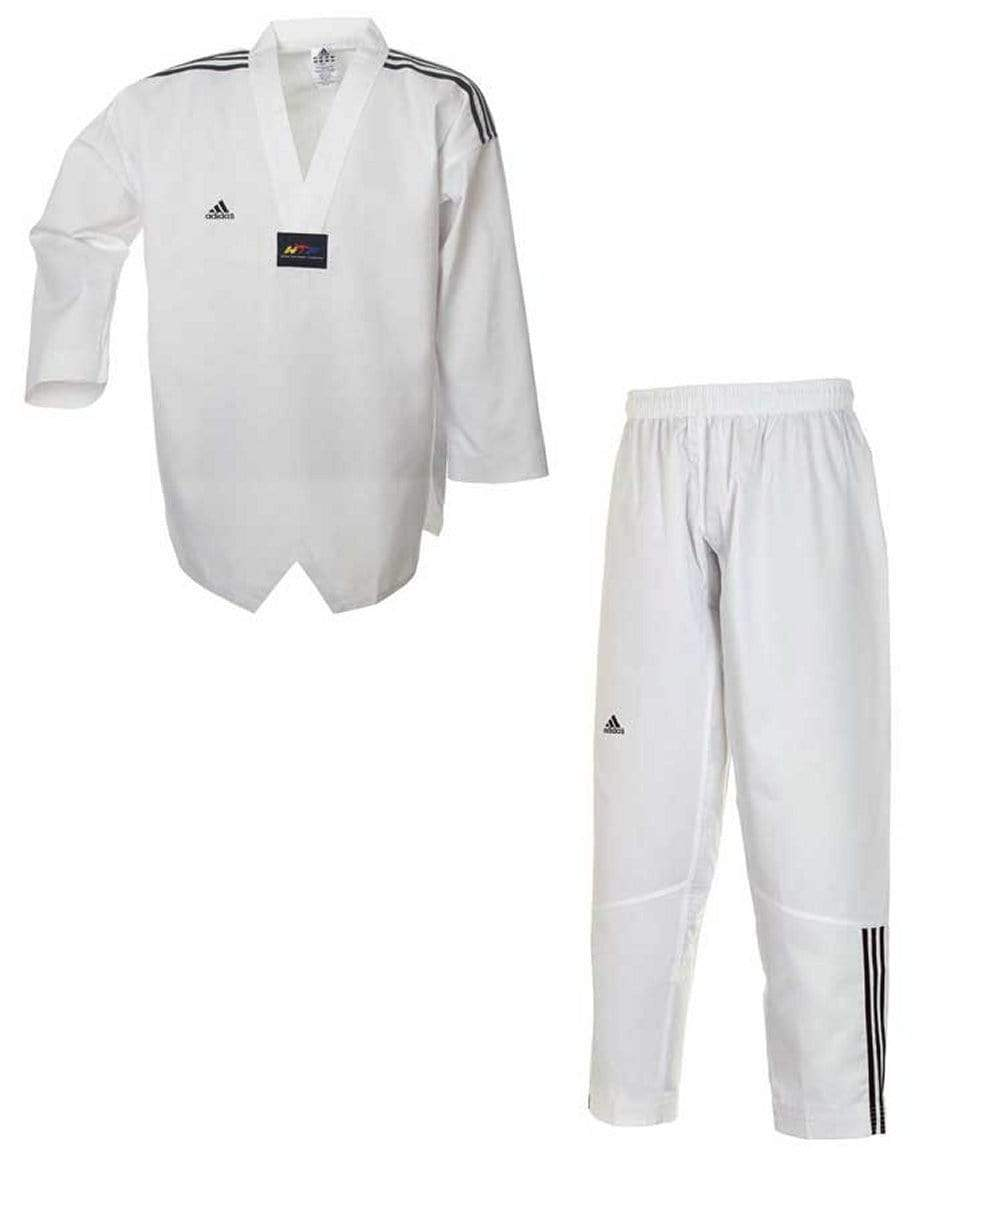 white ADI CLUB TKD UNIFORM WITH 3 STRIPES